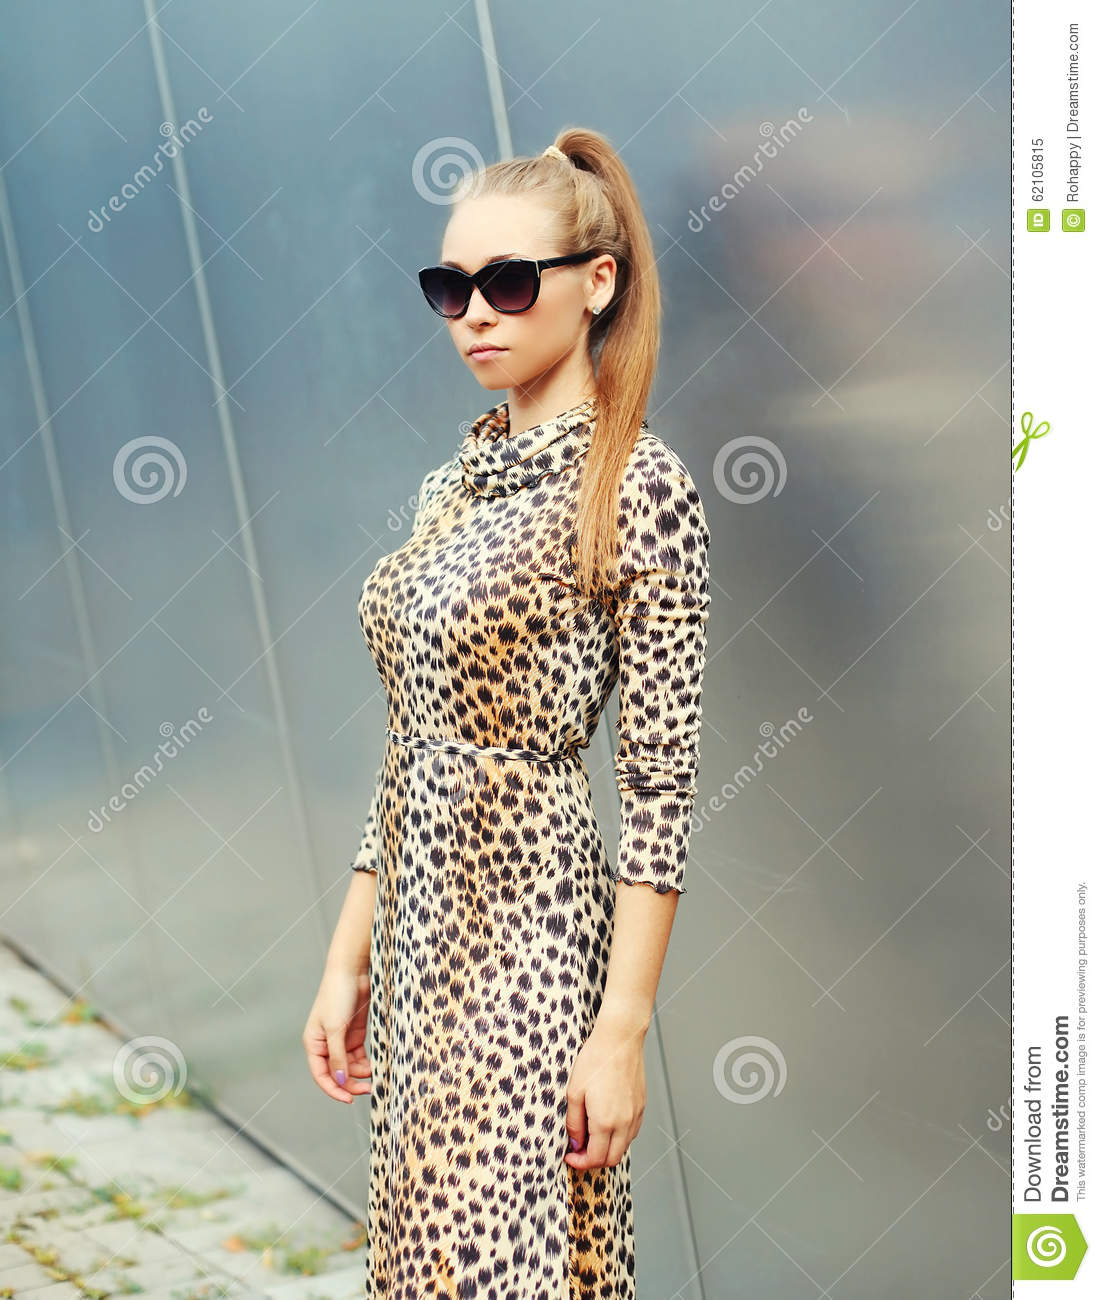 Beautiful Blonde Woman Wearing A Leopard Dress And